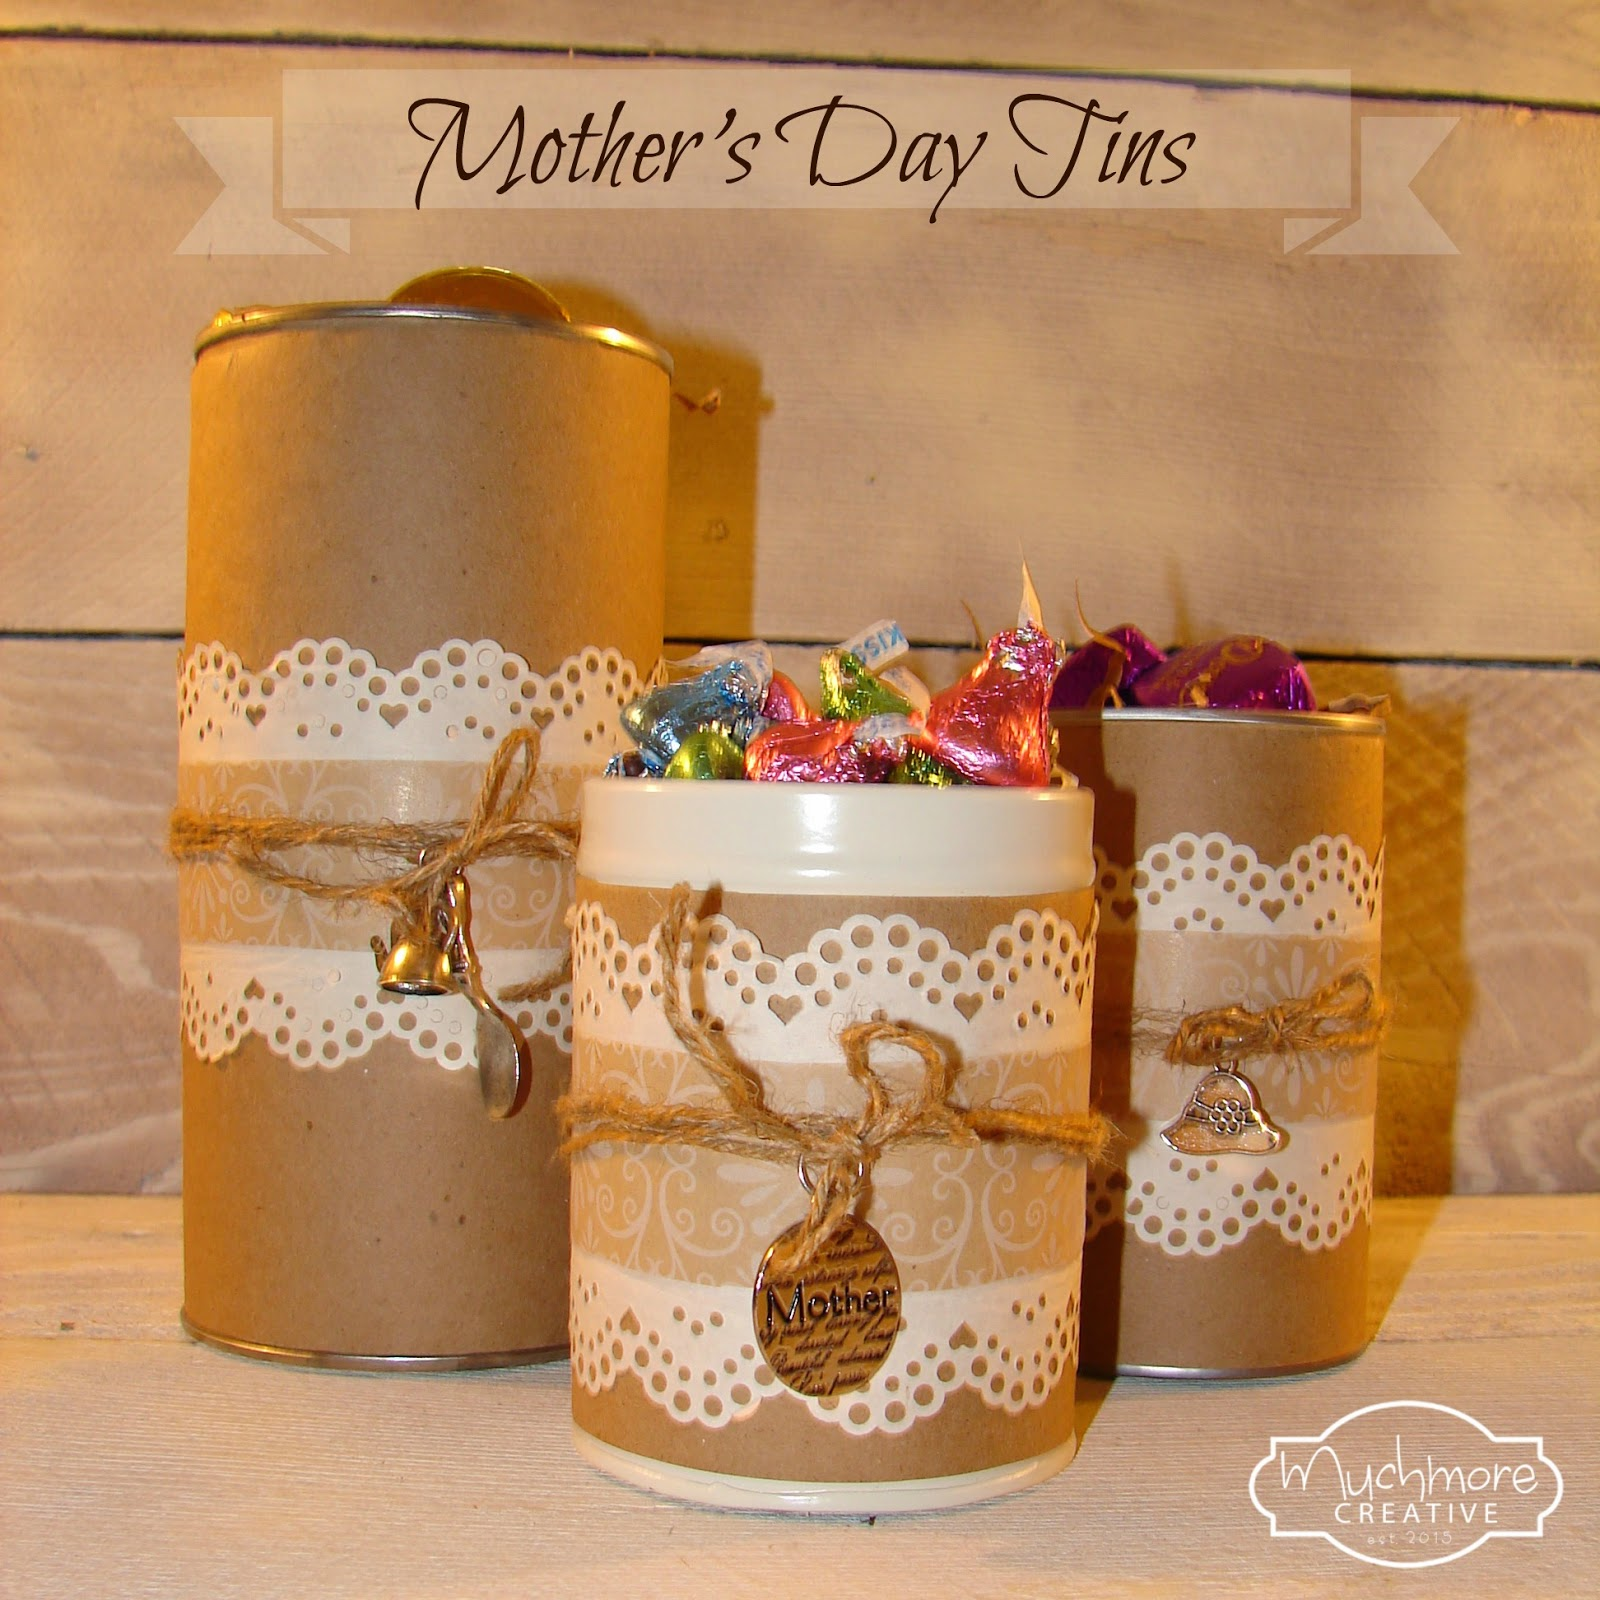 Mother's Day Tins